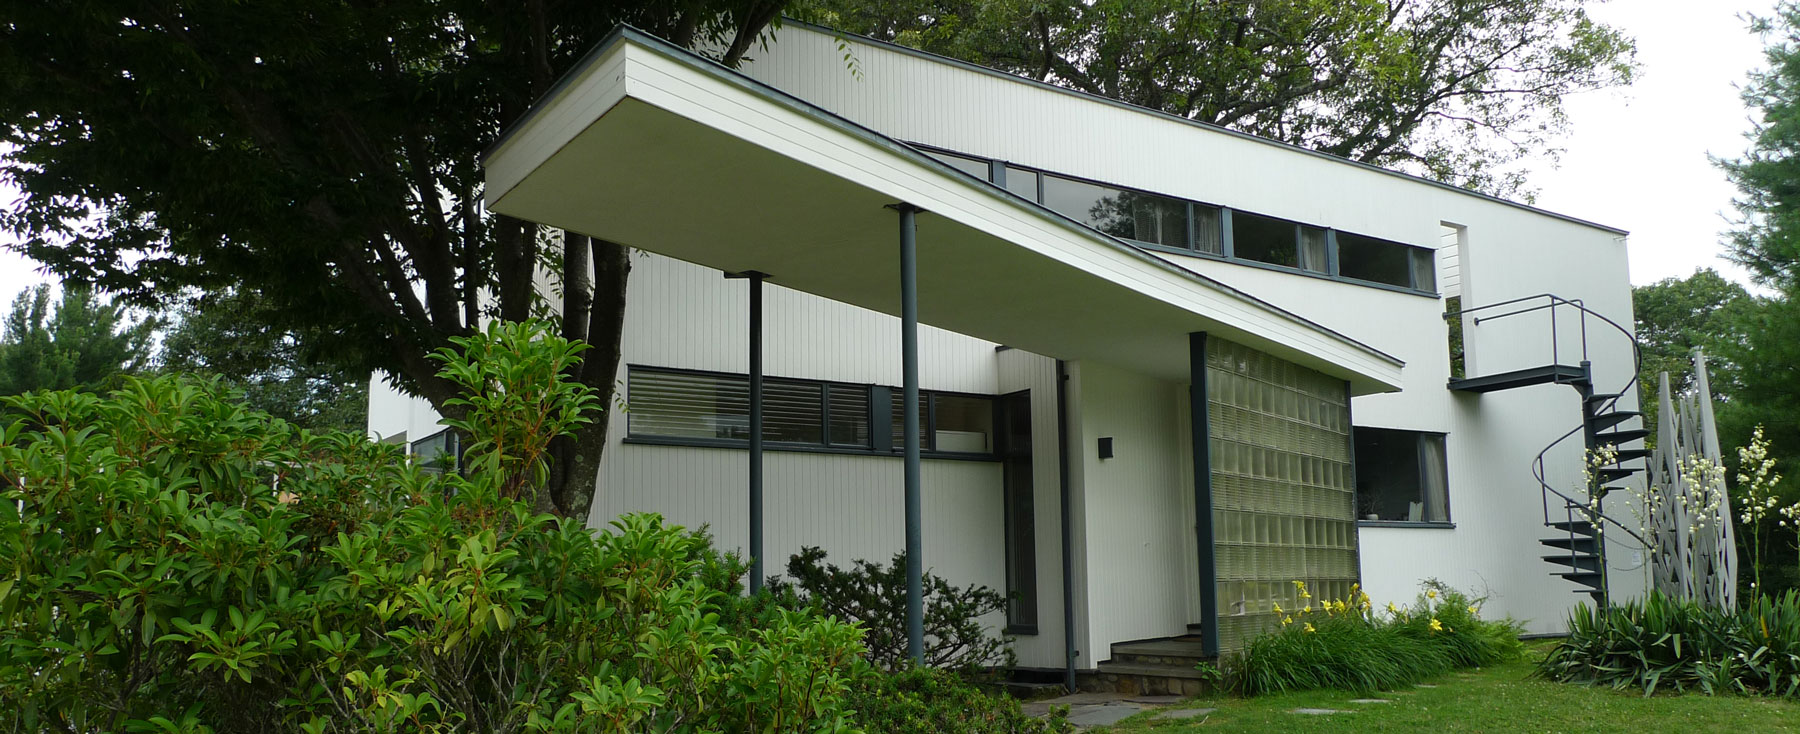 Composer Stravinsky Visits Gropius House In Lincoln